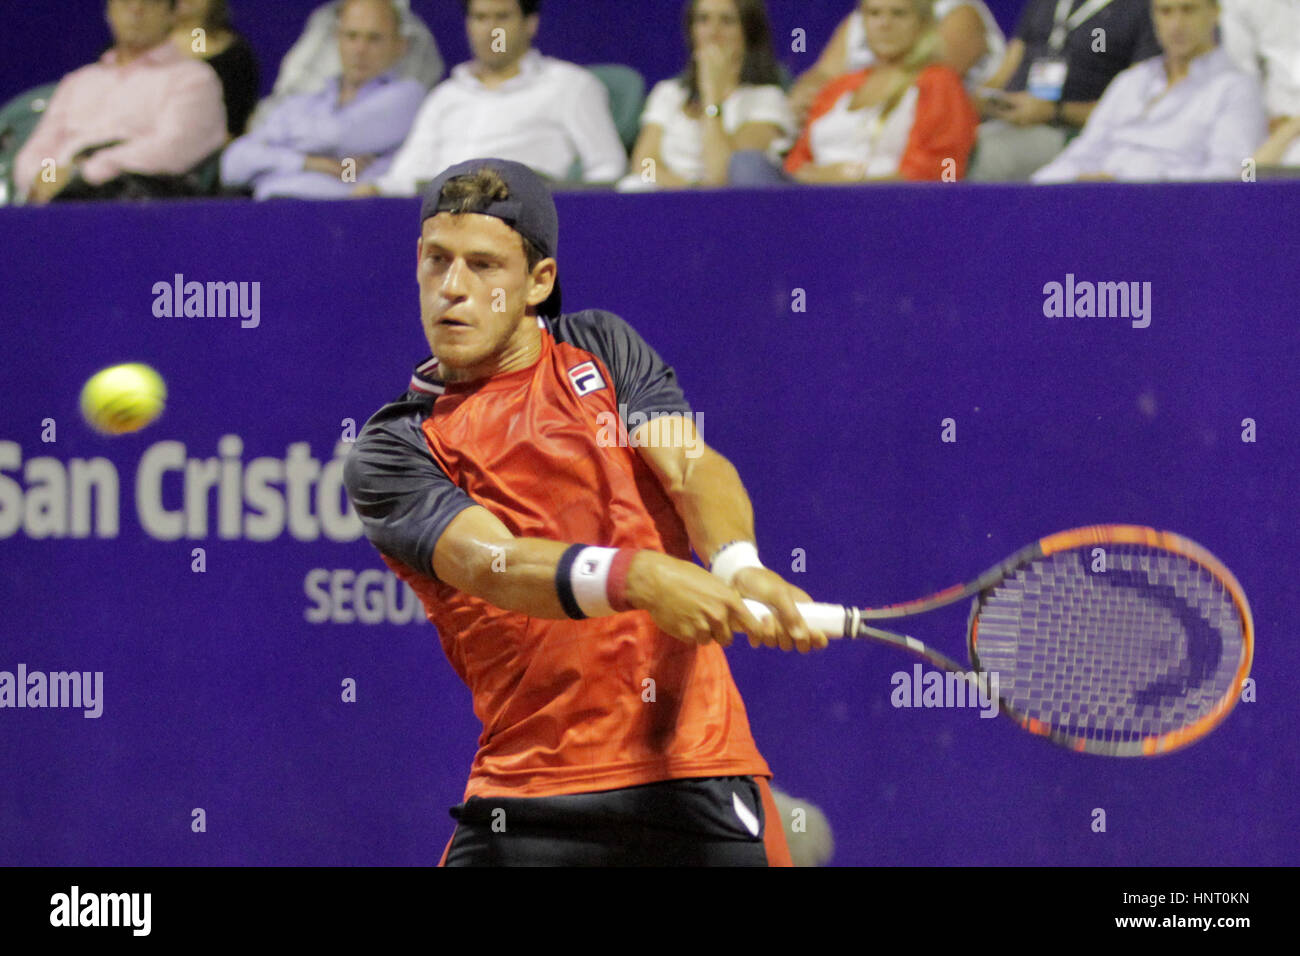 Buenos Aires, Argentina. 15th February 2017.  Argentinian player Diego Schwartzman during the game for main draw - Stock Image